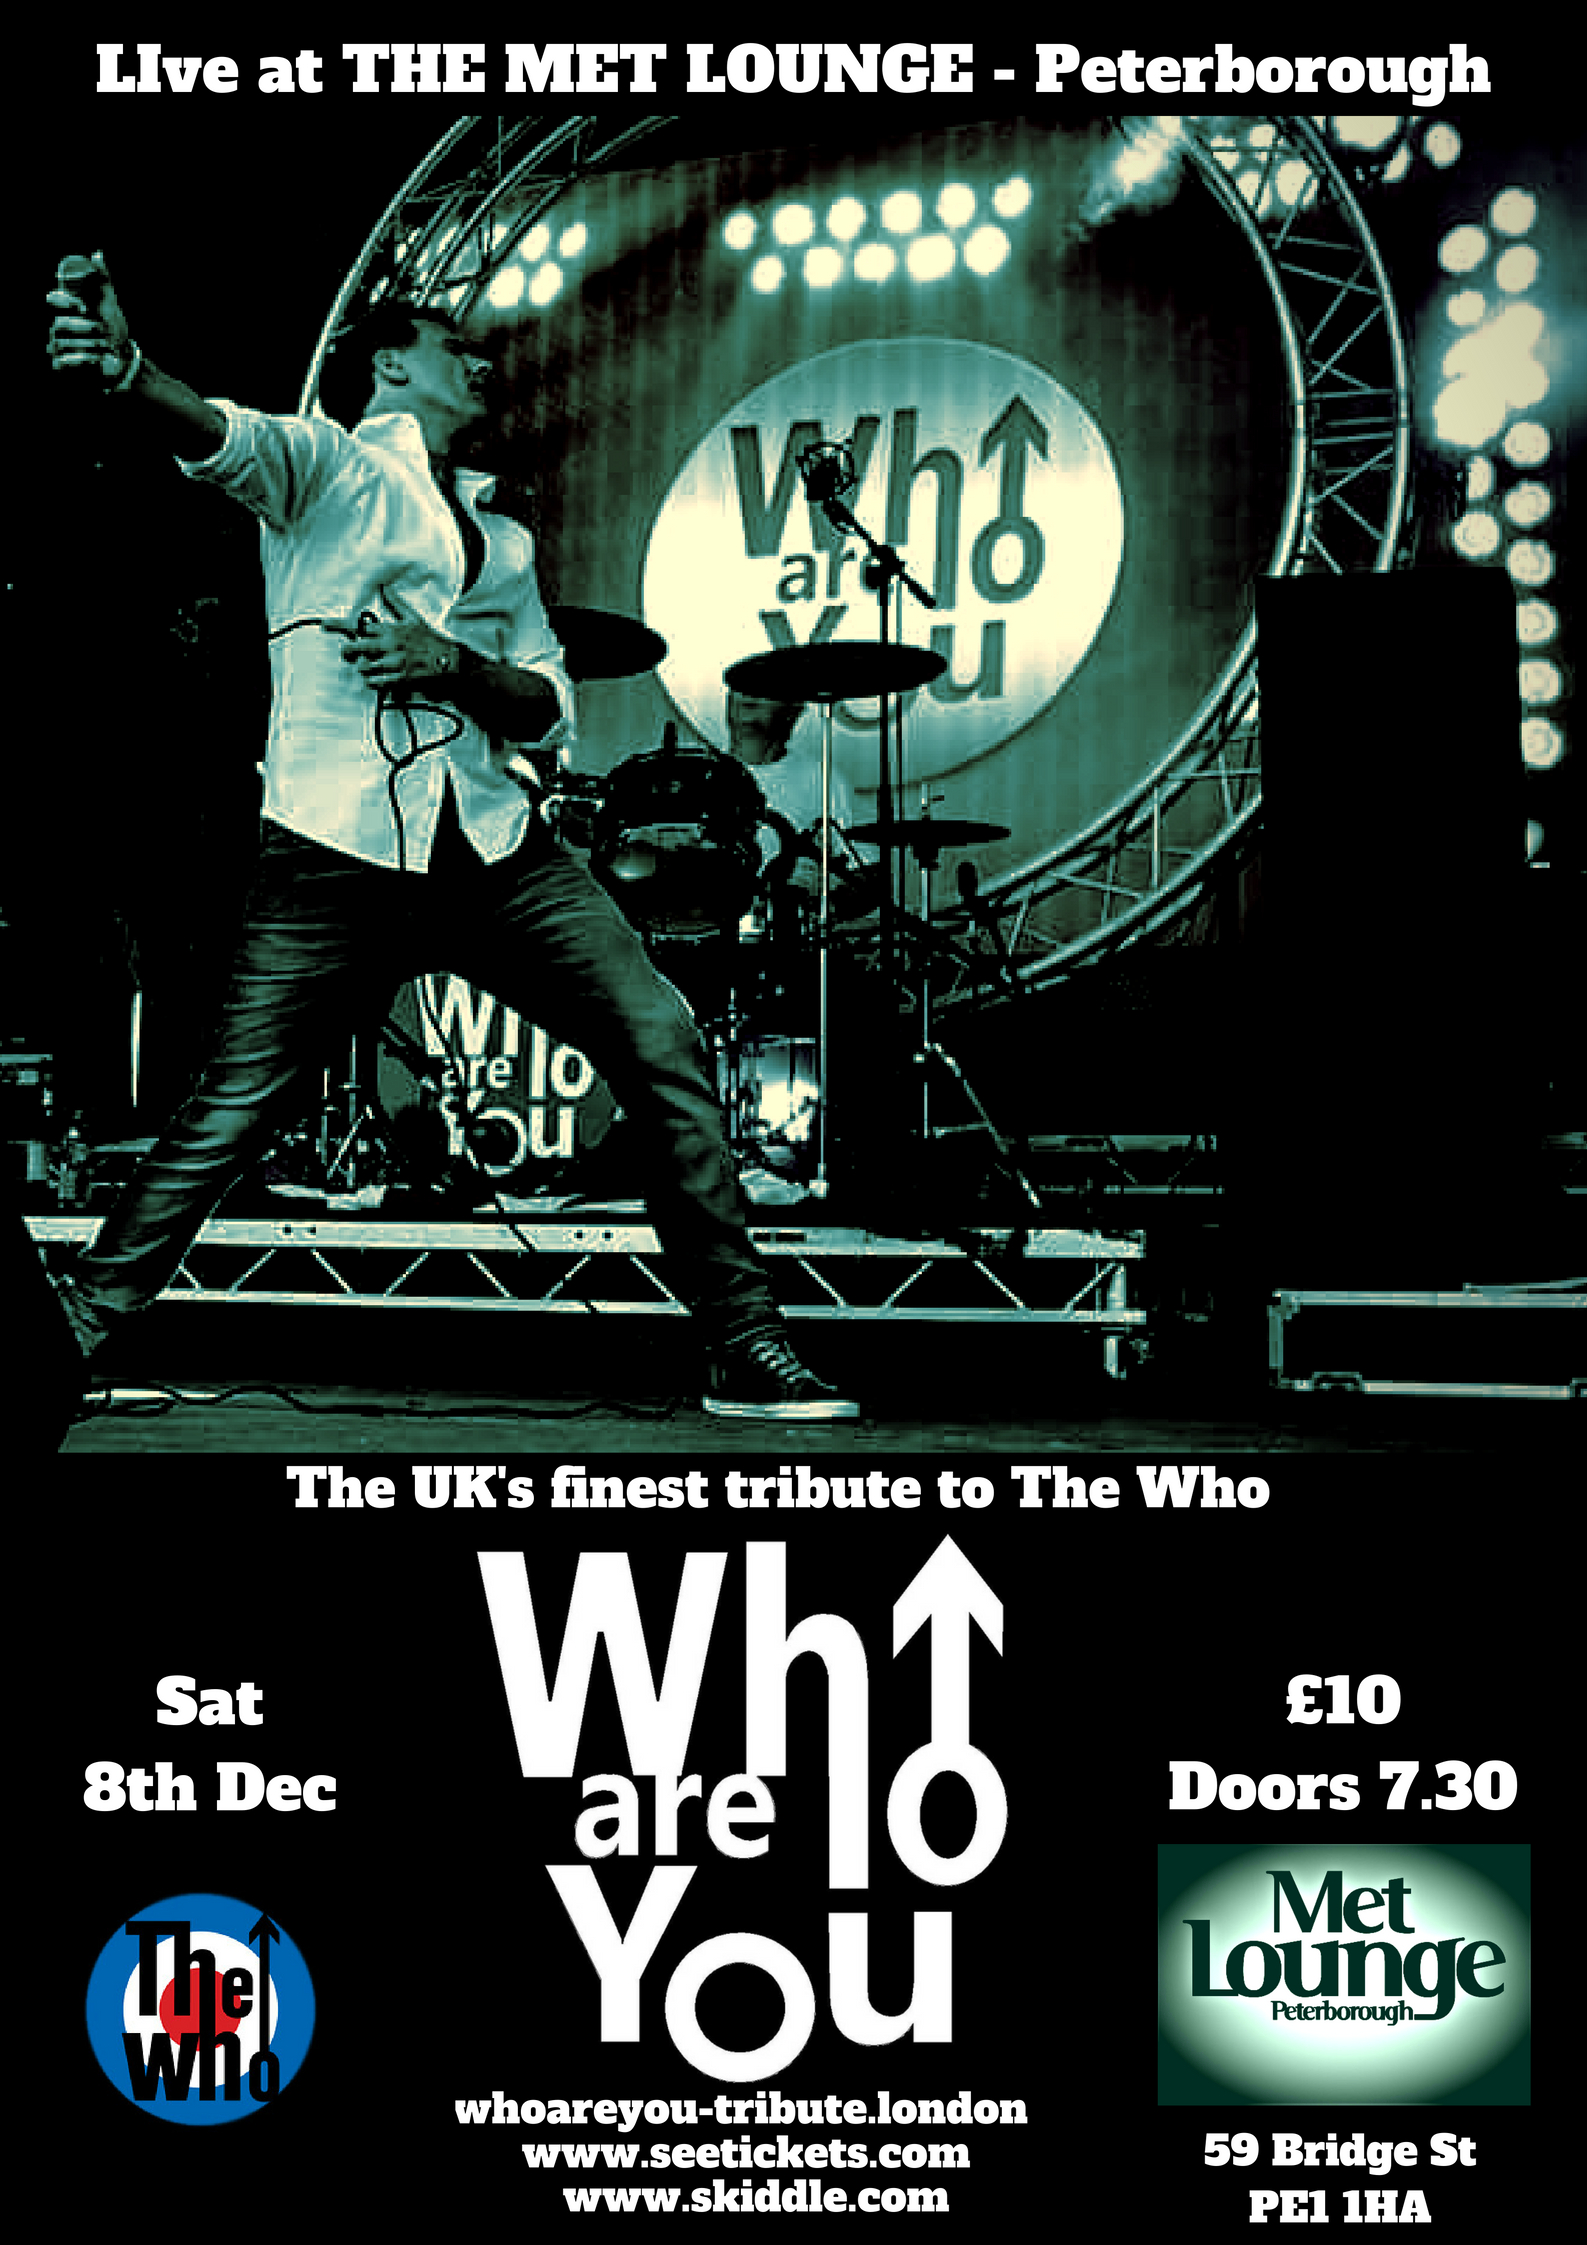 The UK's finest tribute to The WHo